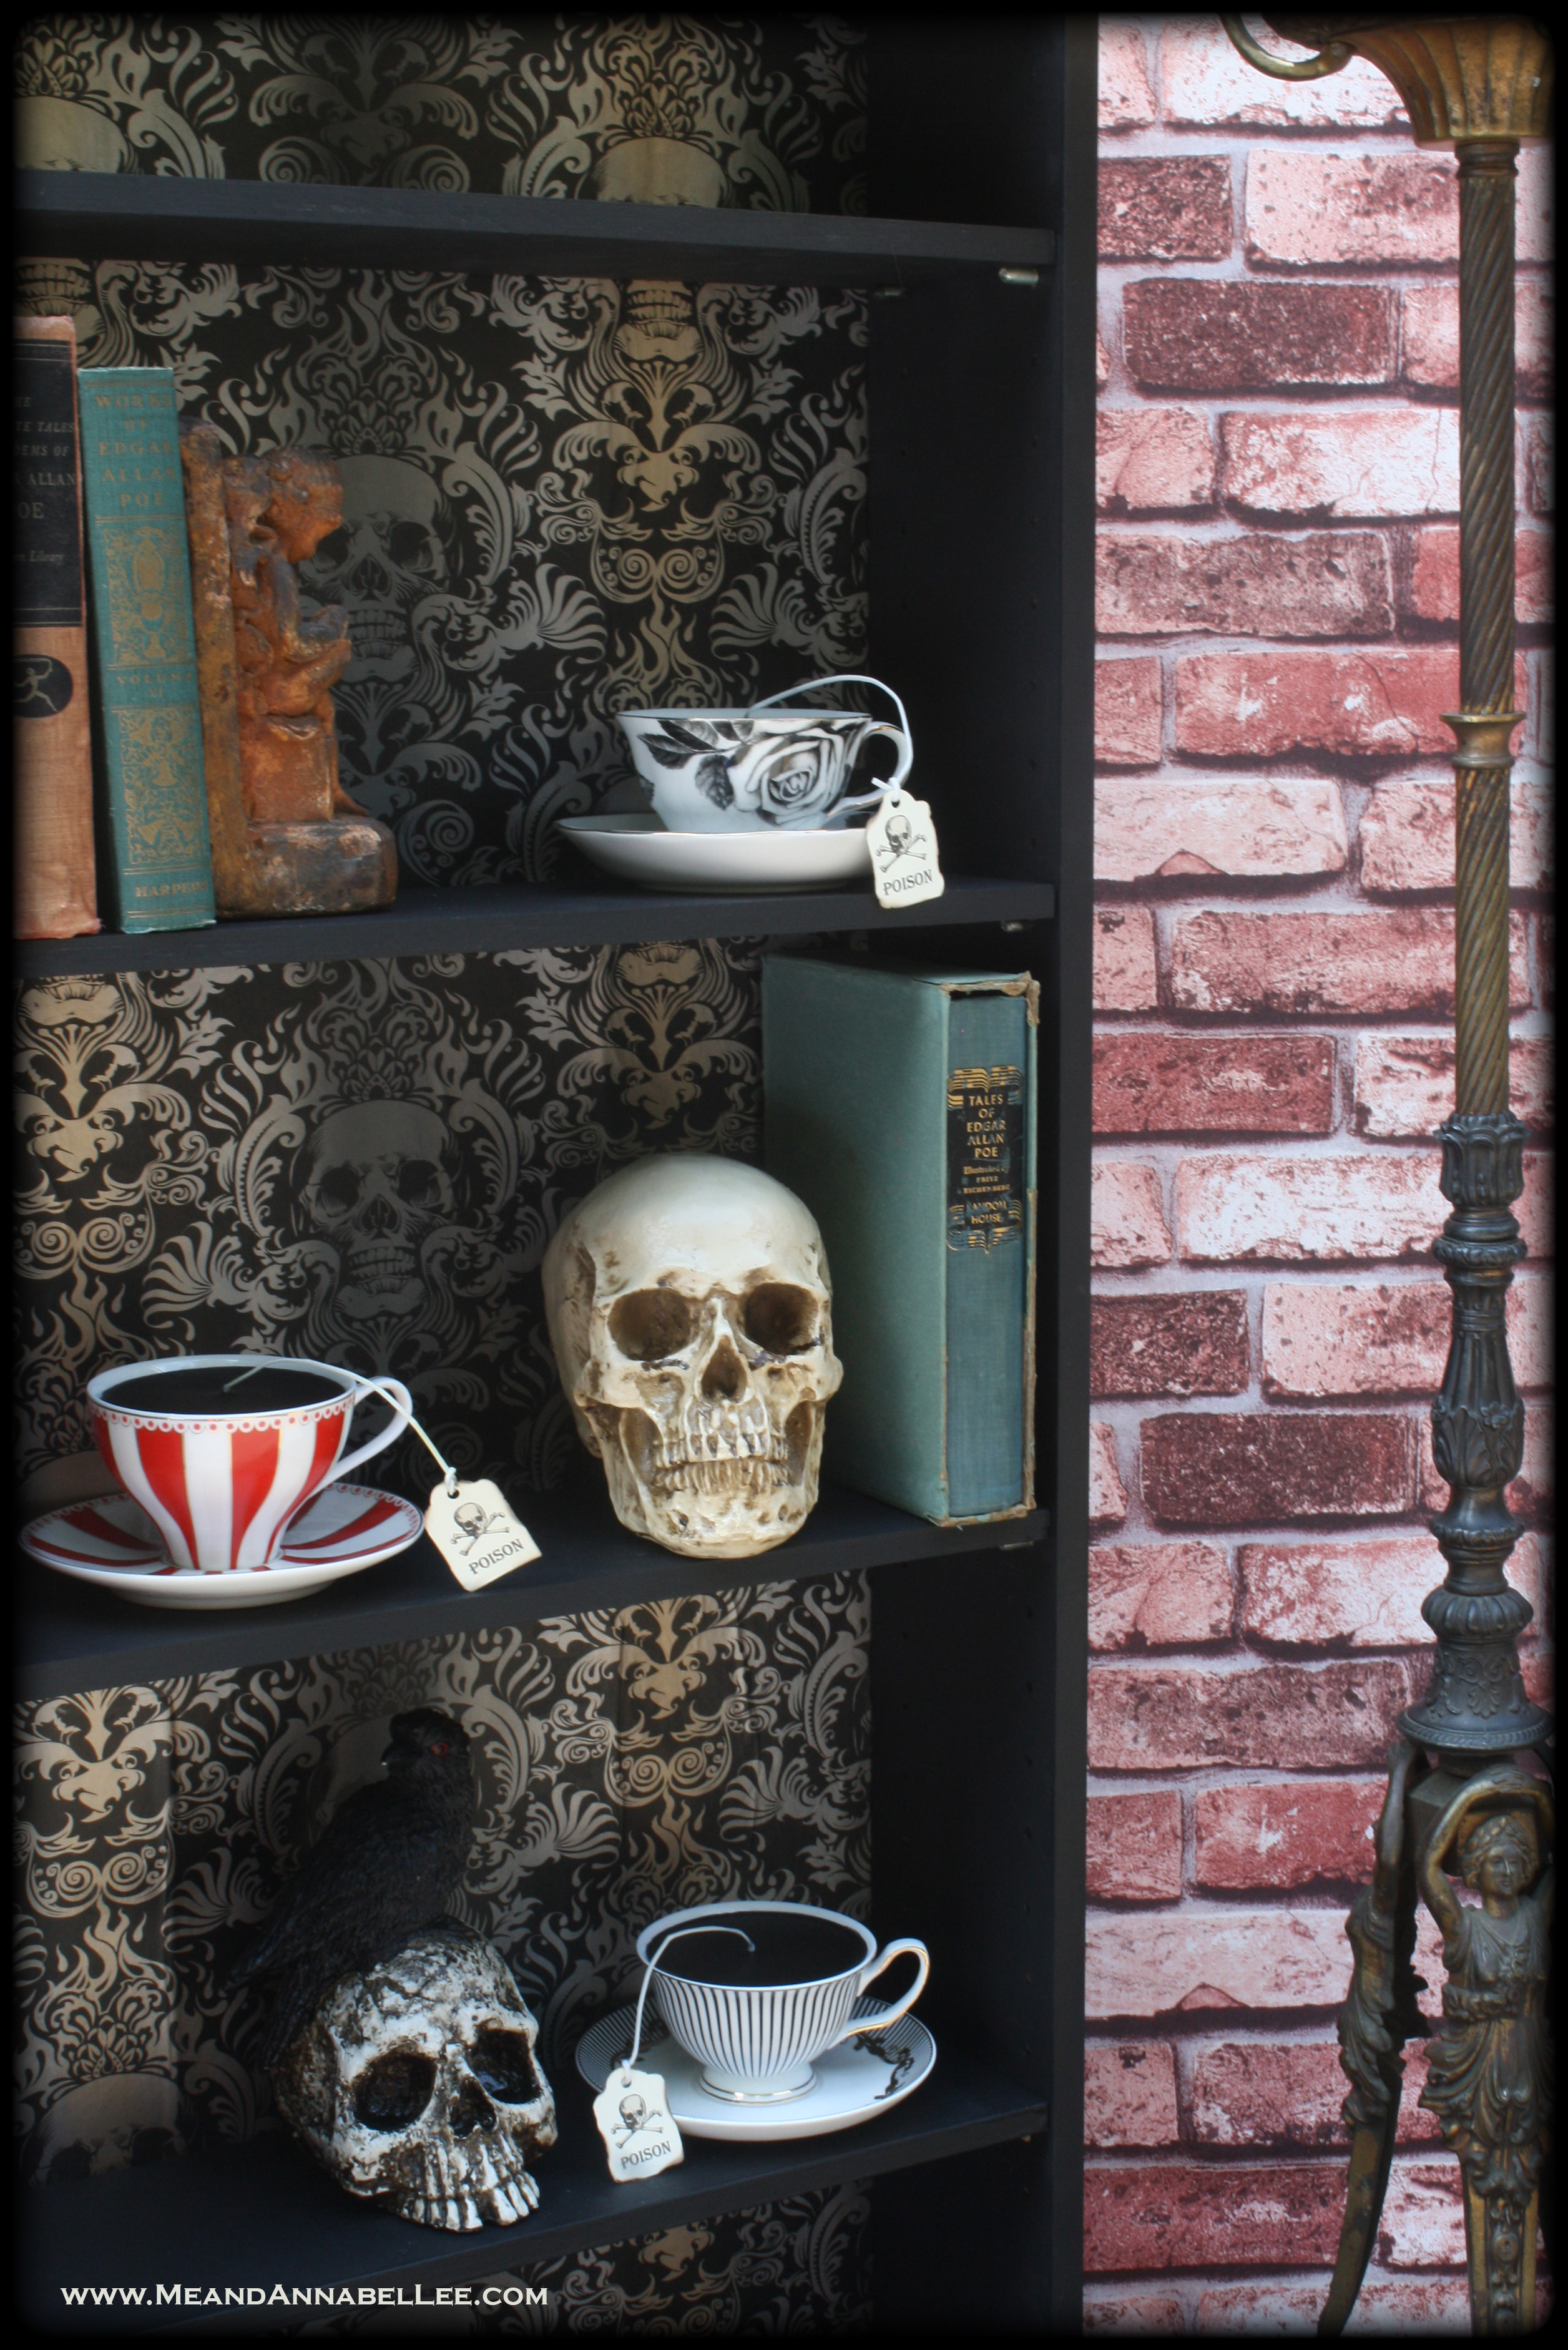 Diy Gothic Skull Bookcase Wallpaper Crafts Goth Home Decor Me And Annabel Lee